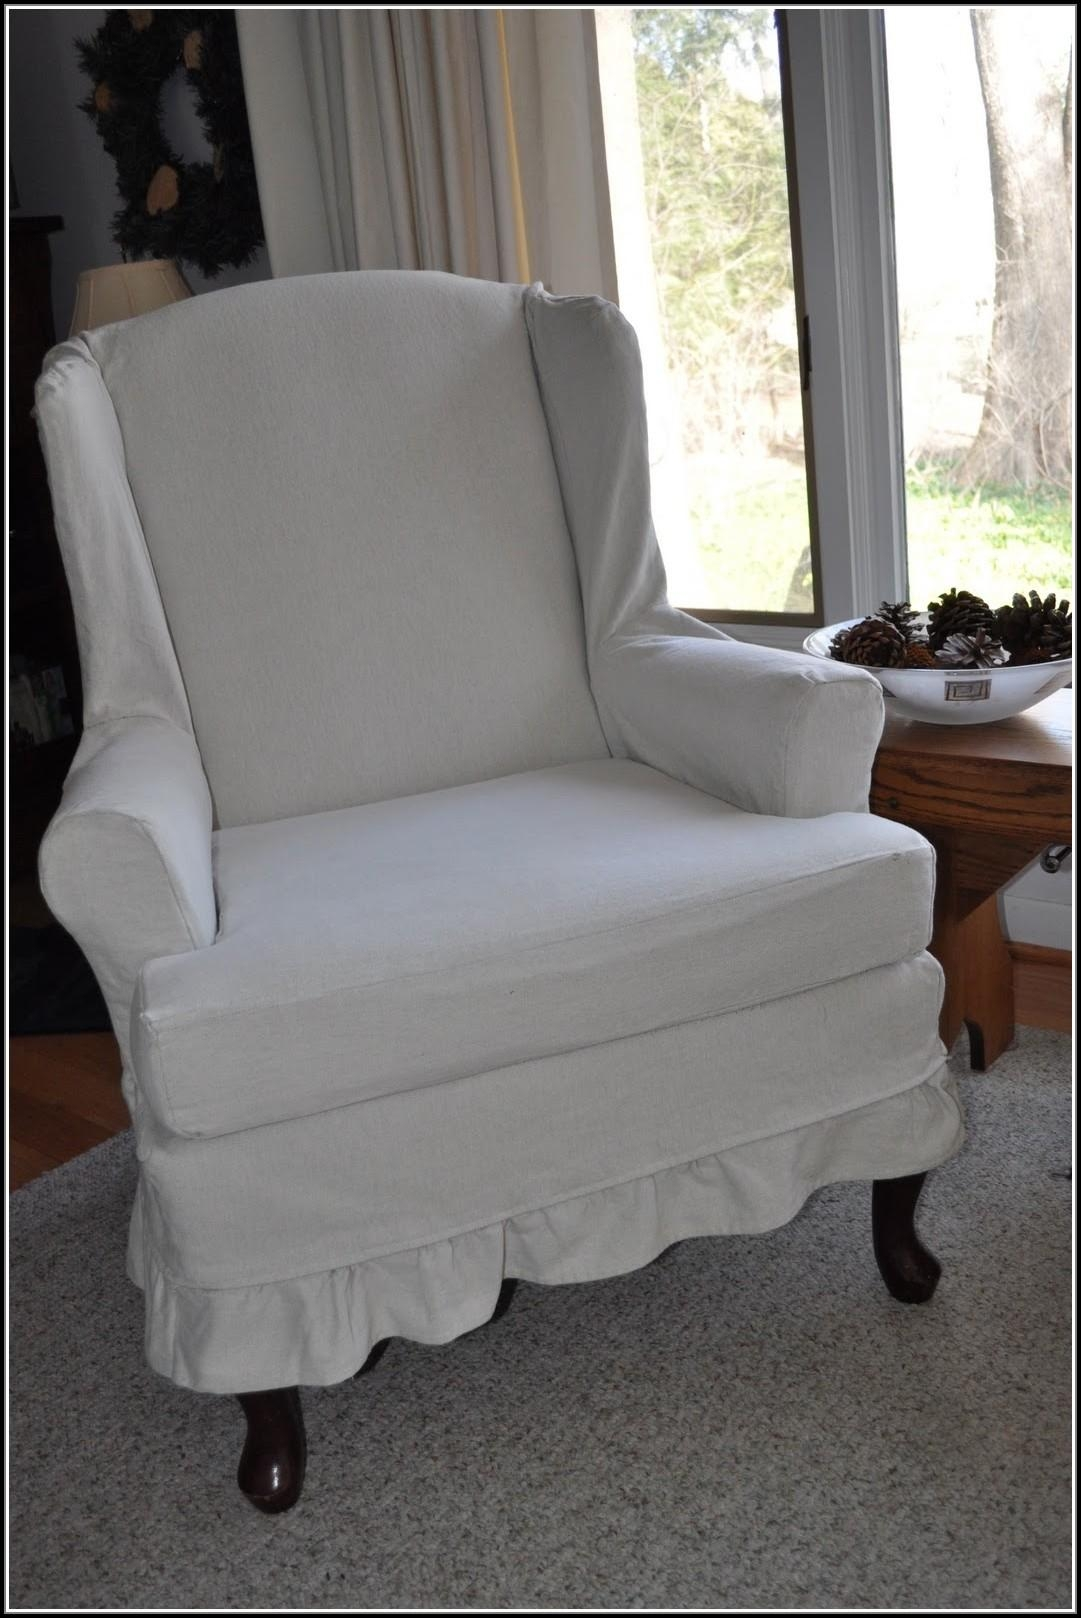 Wingback Chair Slipcovers Pottery Barn – Chair : Home Furniture With Pottery Barn Chair Slipcovers (Image 20 of 20)